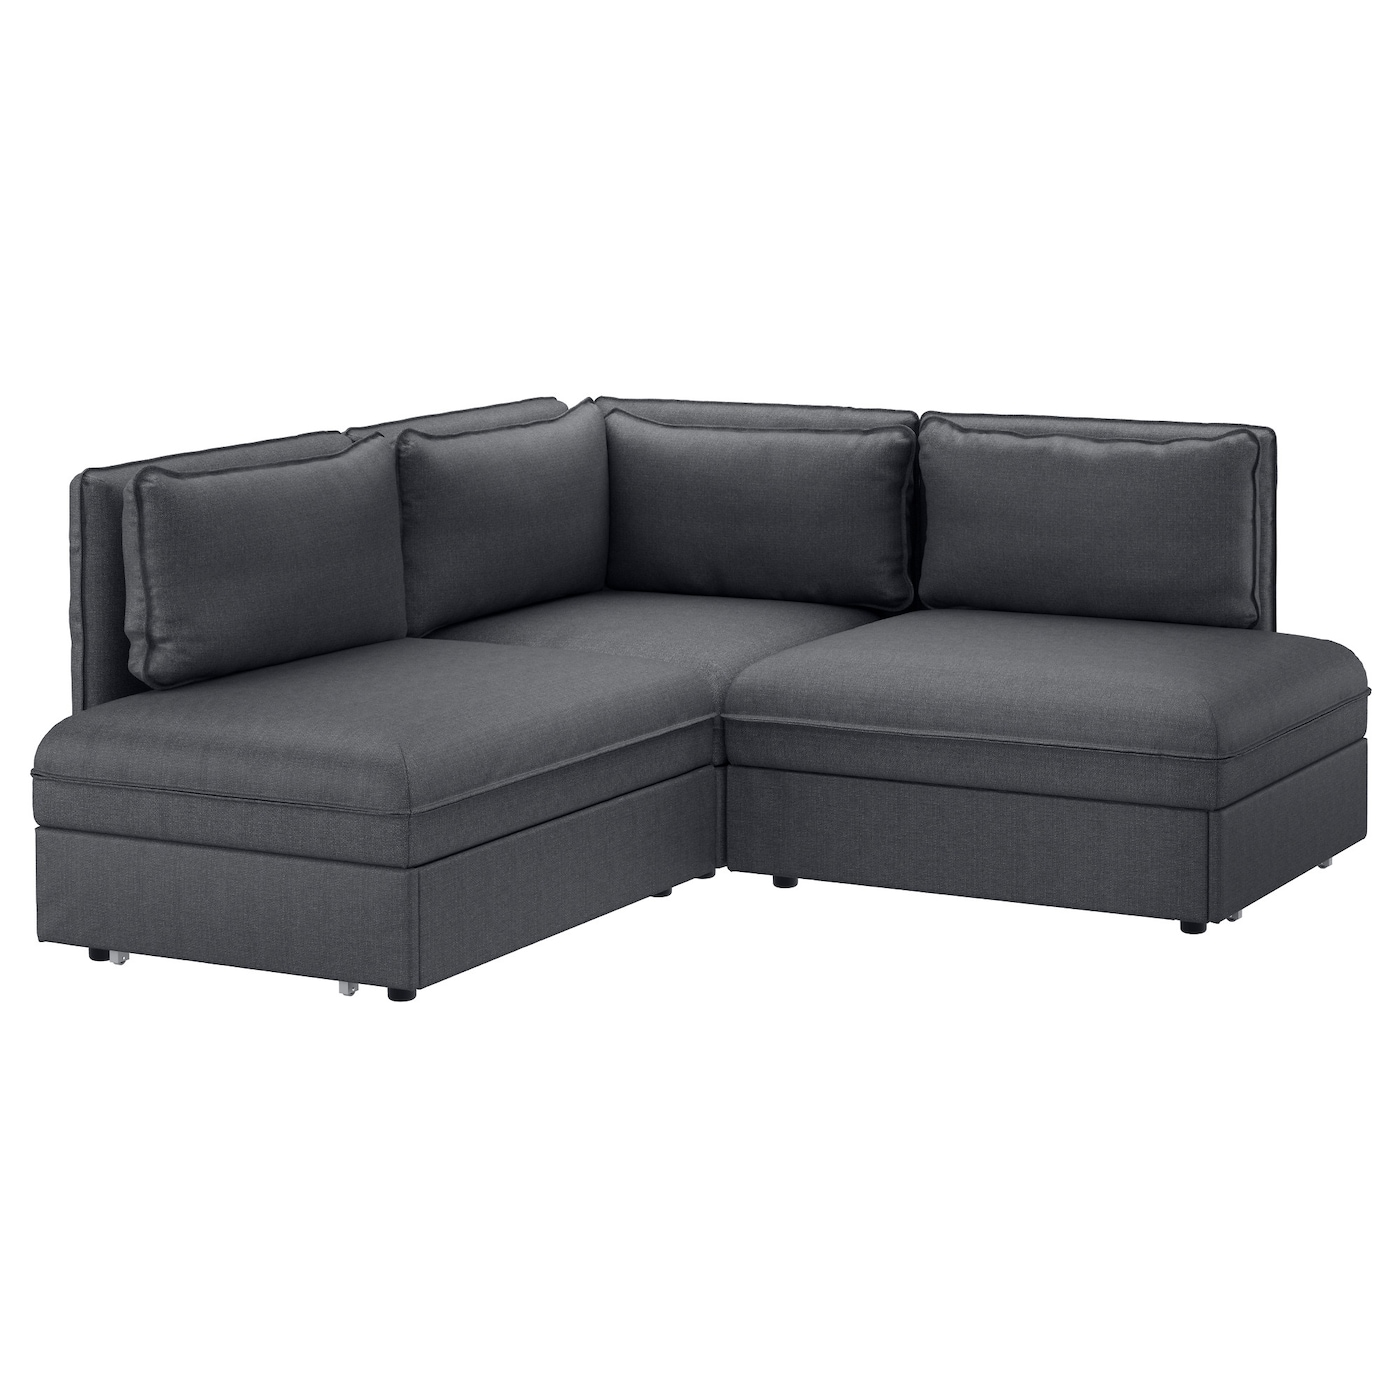 Vallentuna 3 seat corner sofa with bed hillared dark grey for Sofa bed 3 2